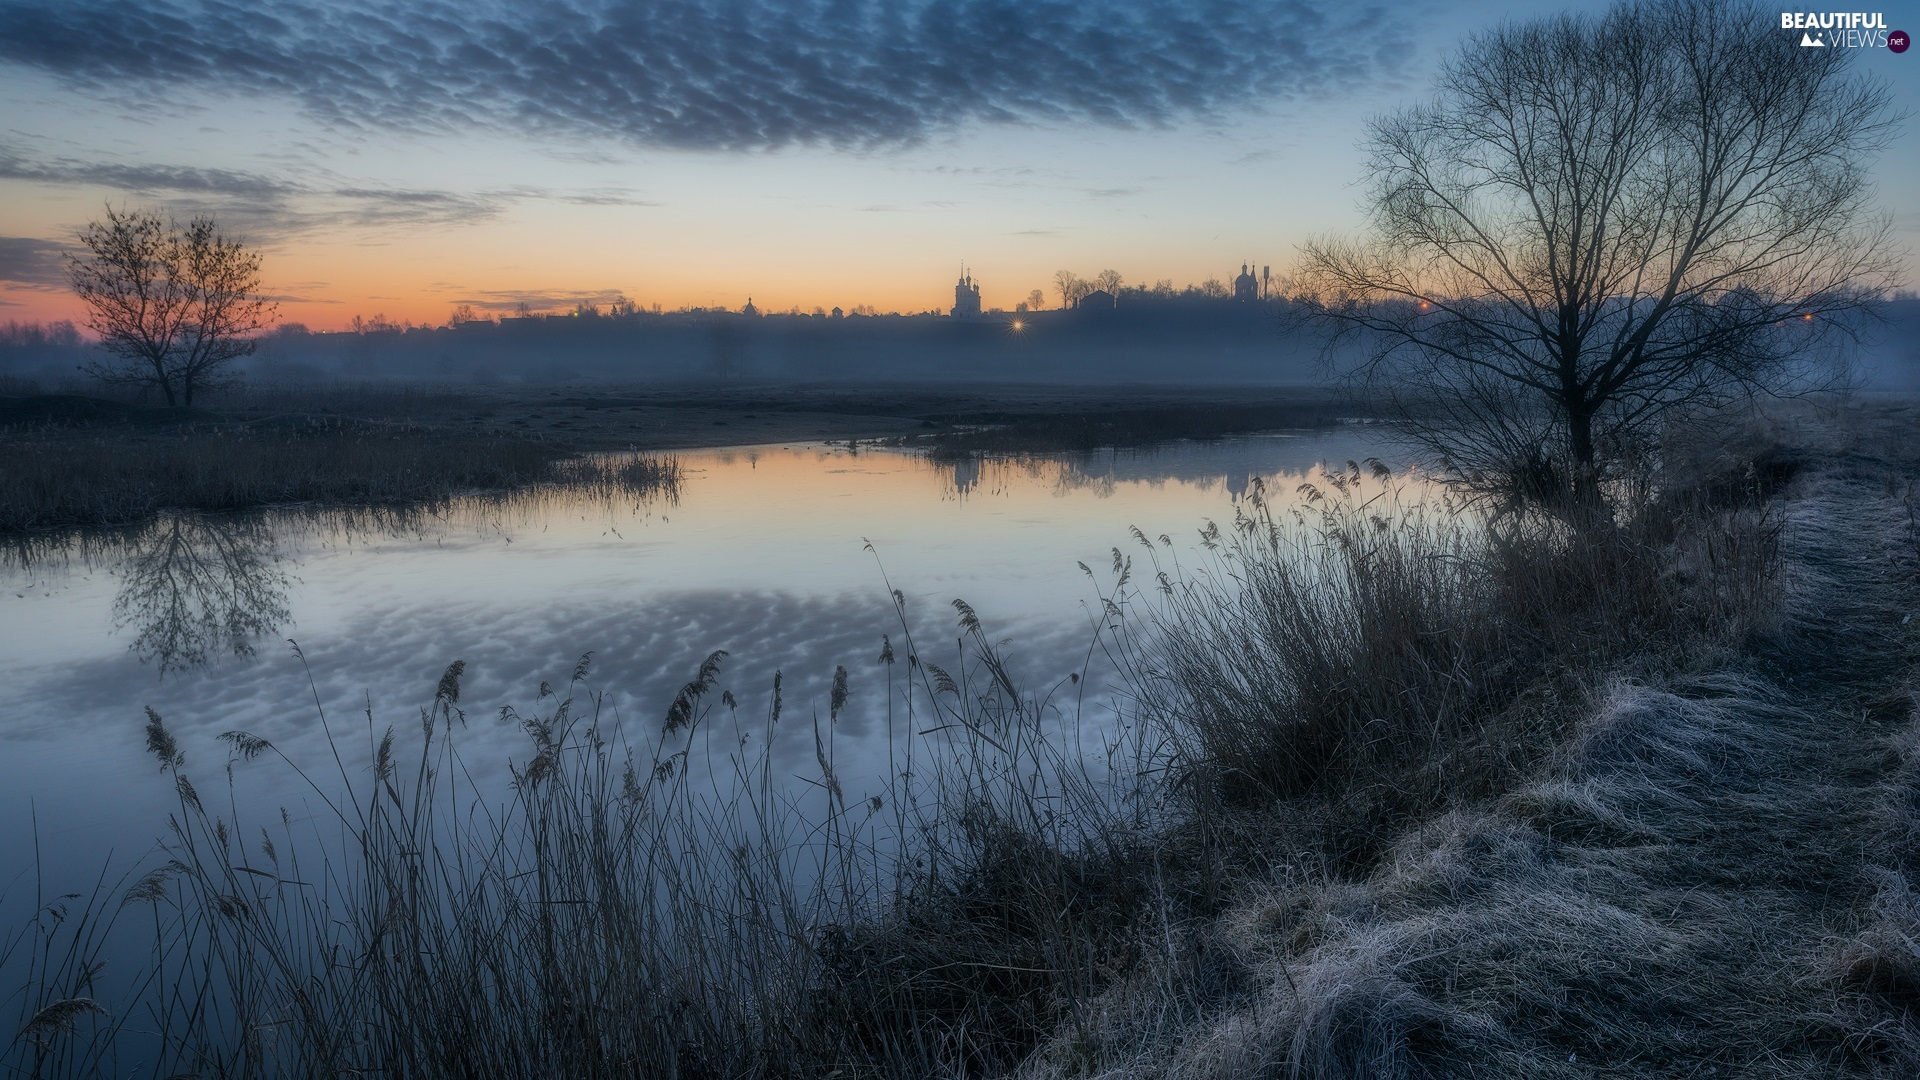 Fog, Sunrise, viewes, River, morning, trees, rushes